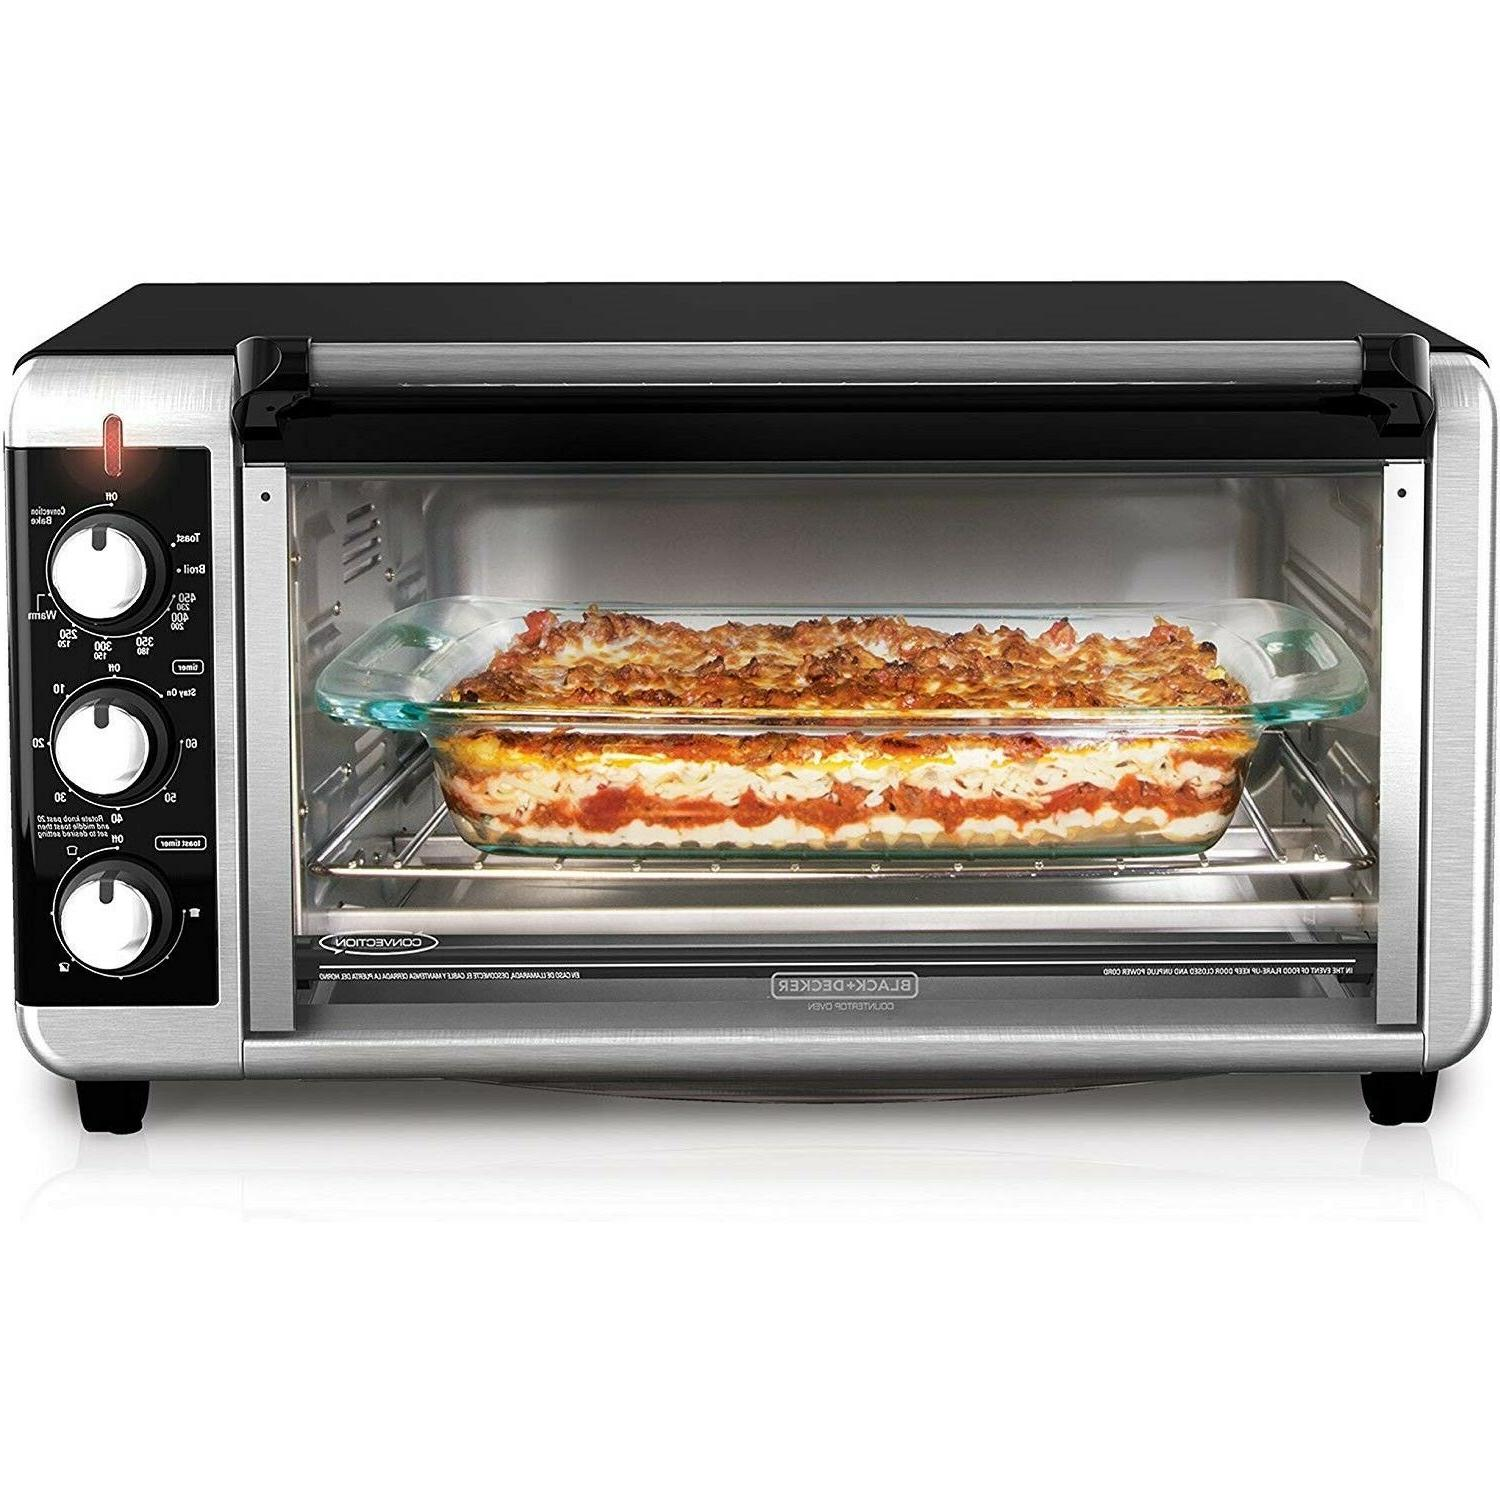 Extra Convection Toaster 8-Slice Bake Pan Steel